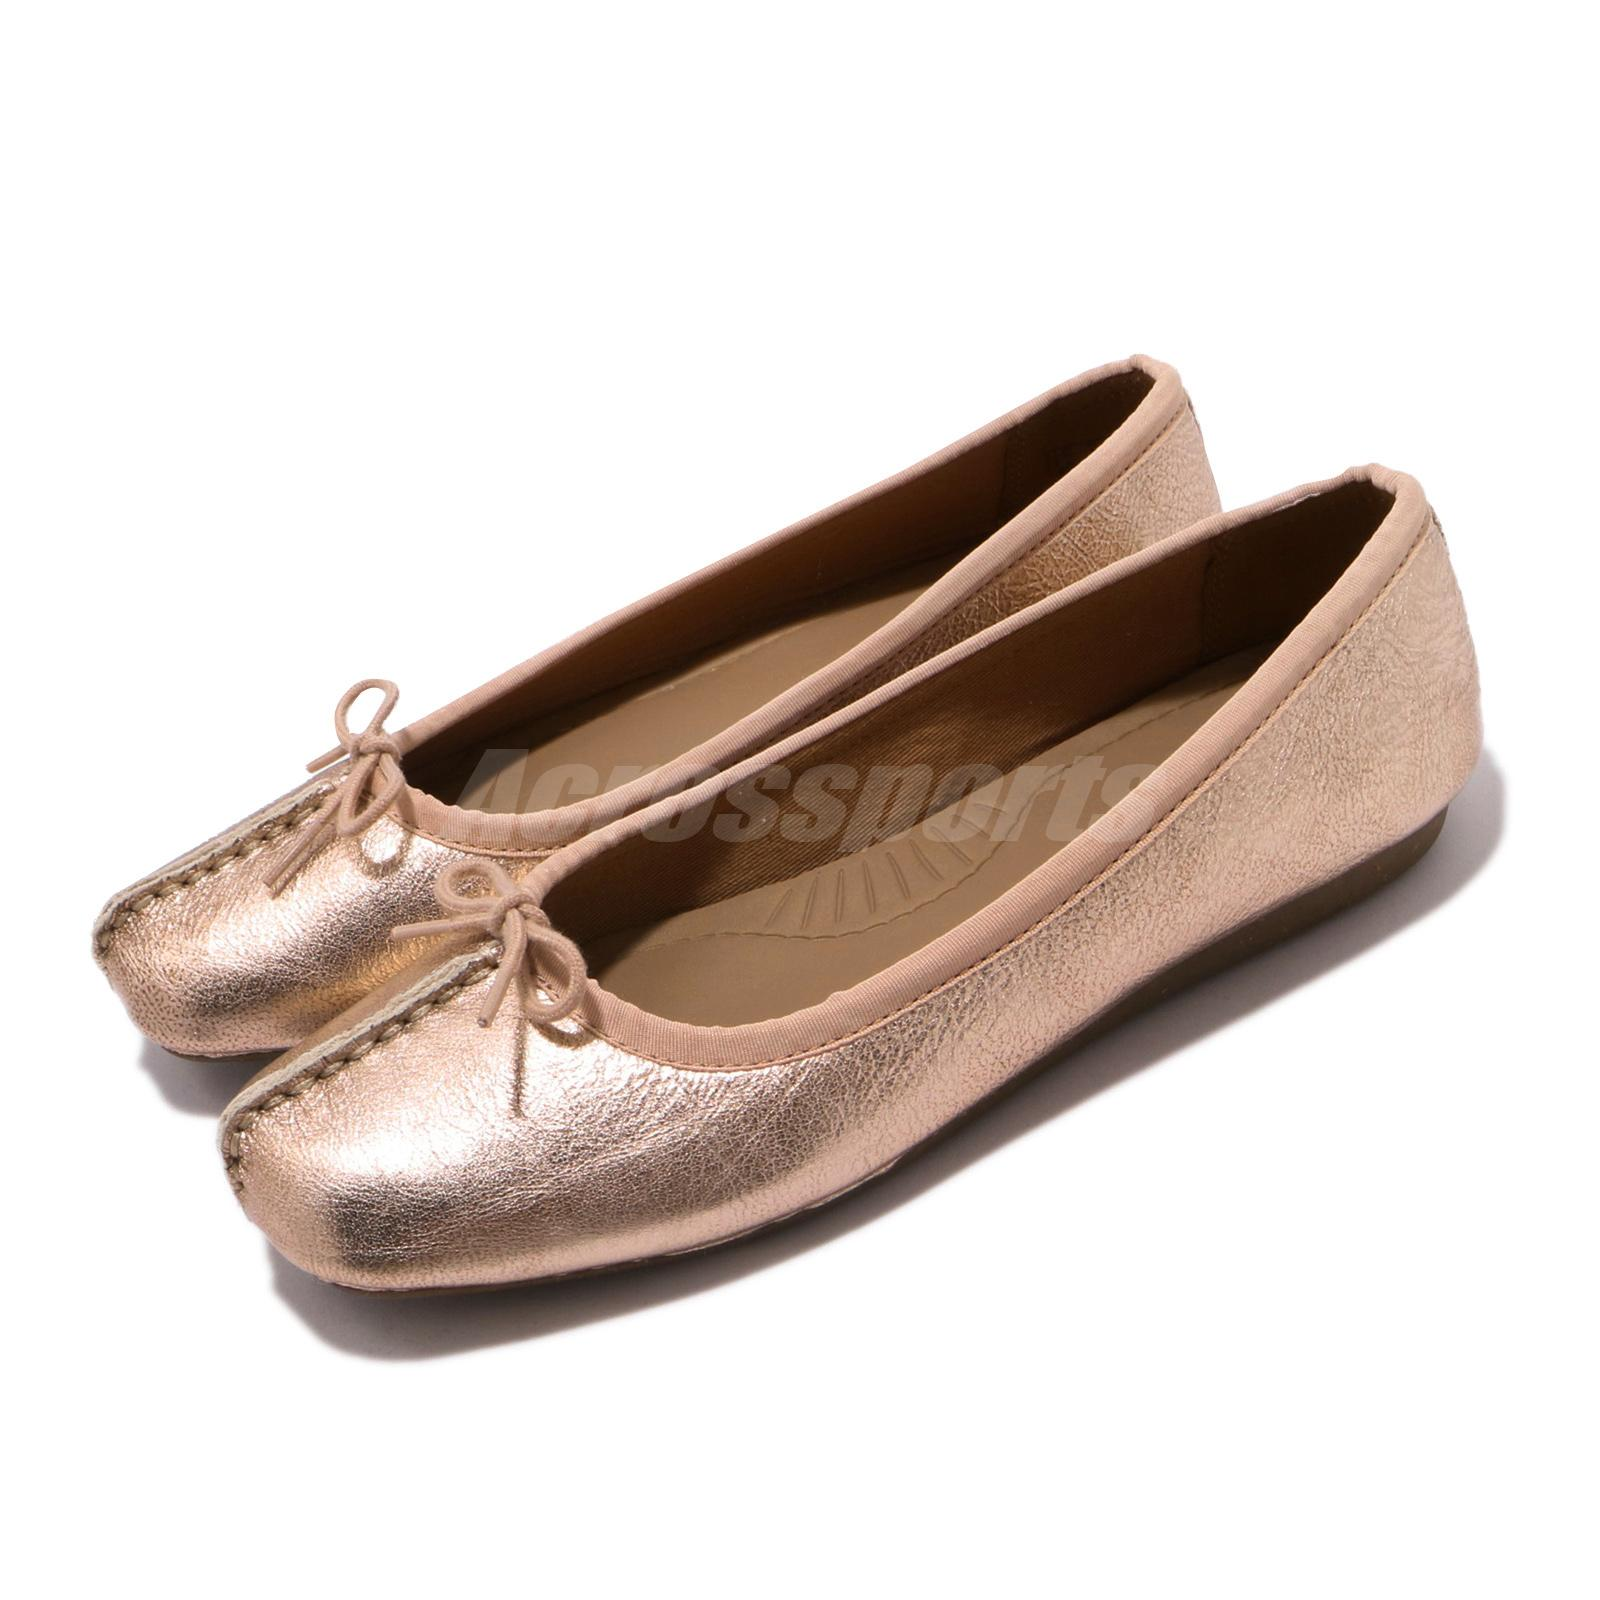 Clarks womens casual shoe FRECKLE ICE Rose Gold D width fitting